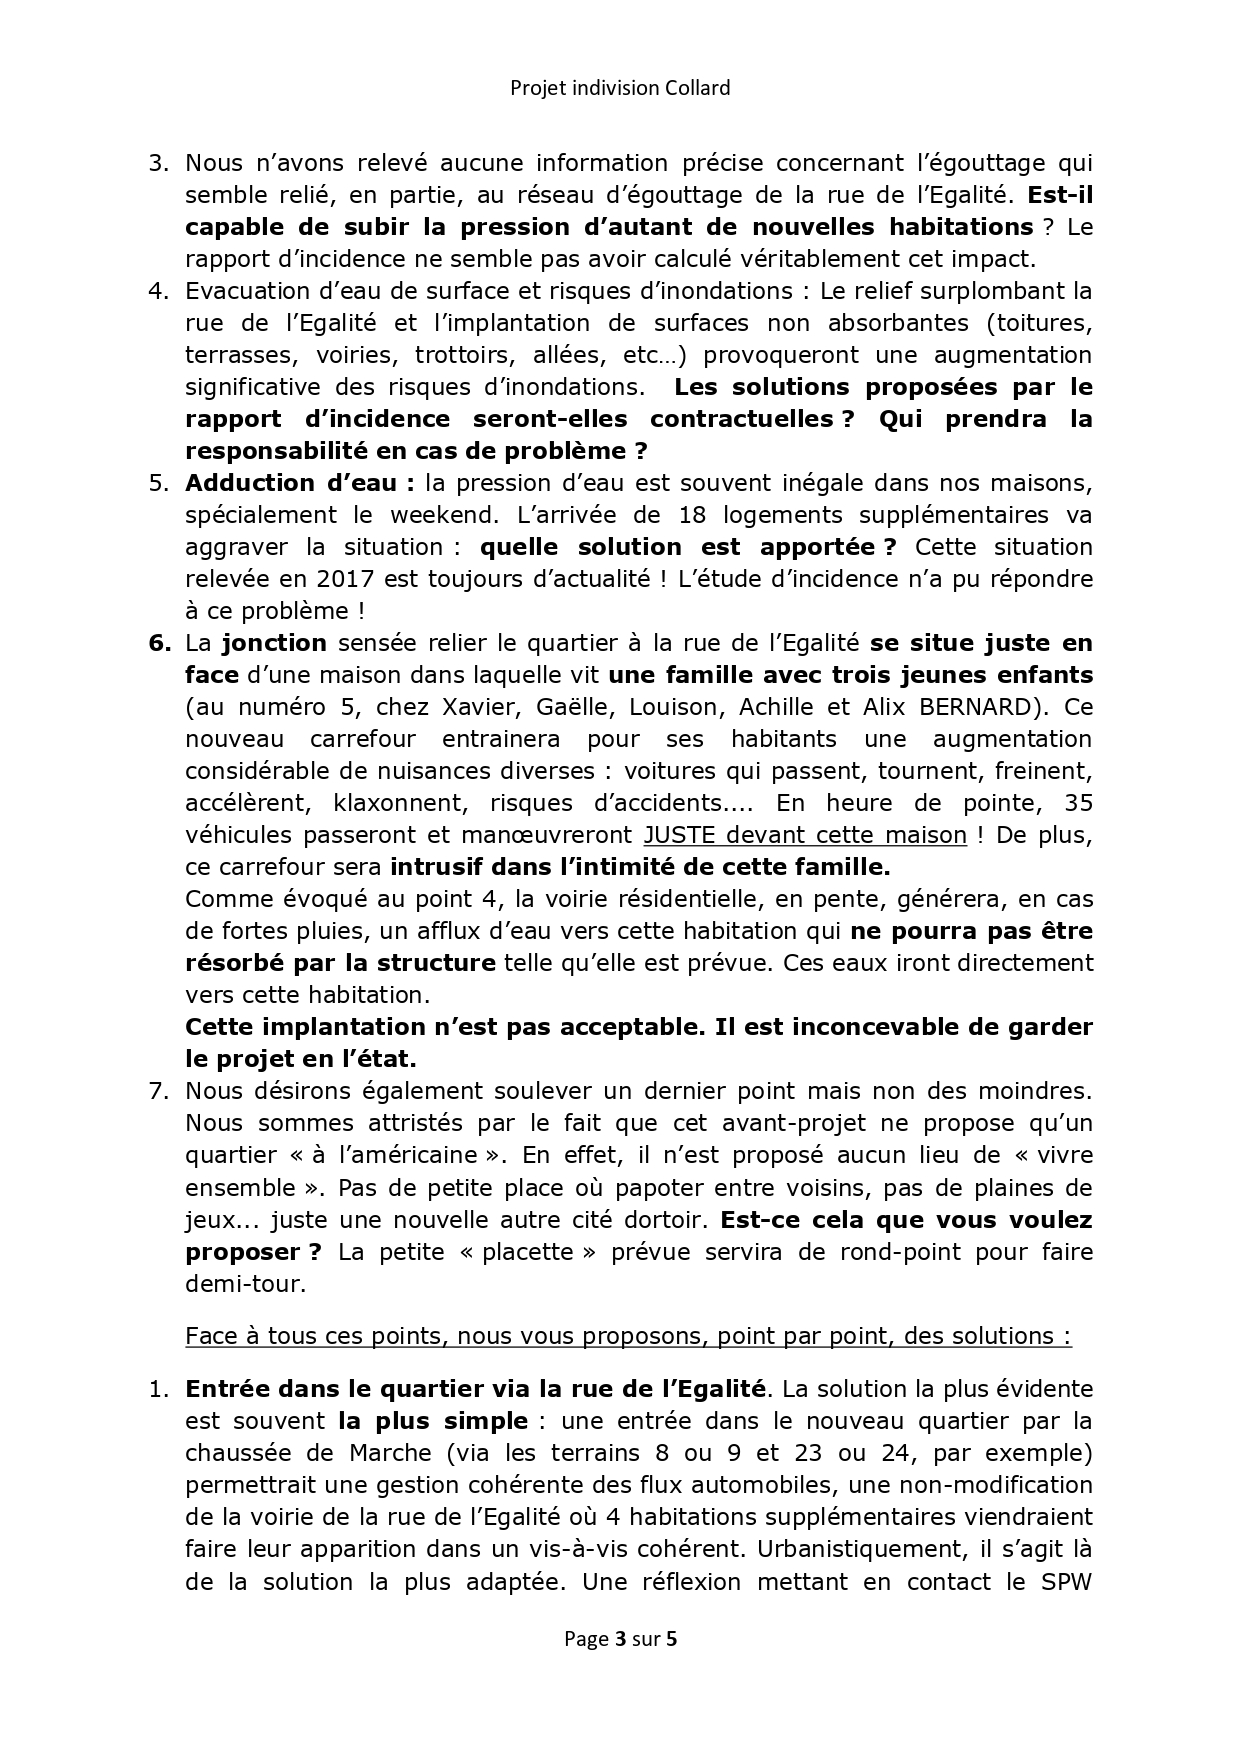 indivision_Collard_juin_2020_VERSION_DEFINITIVE_page-00031.jpg